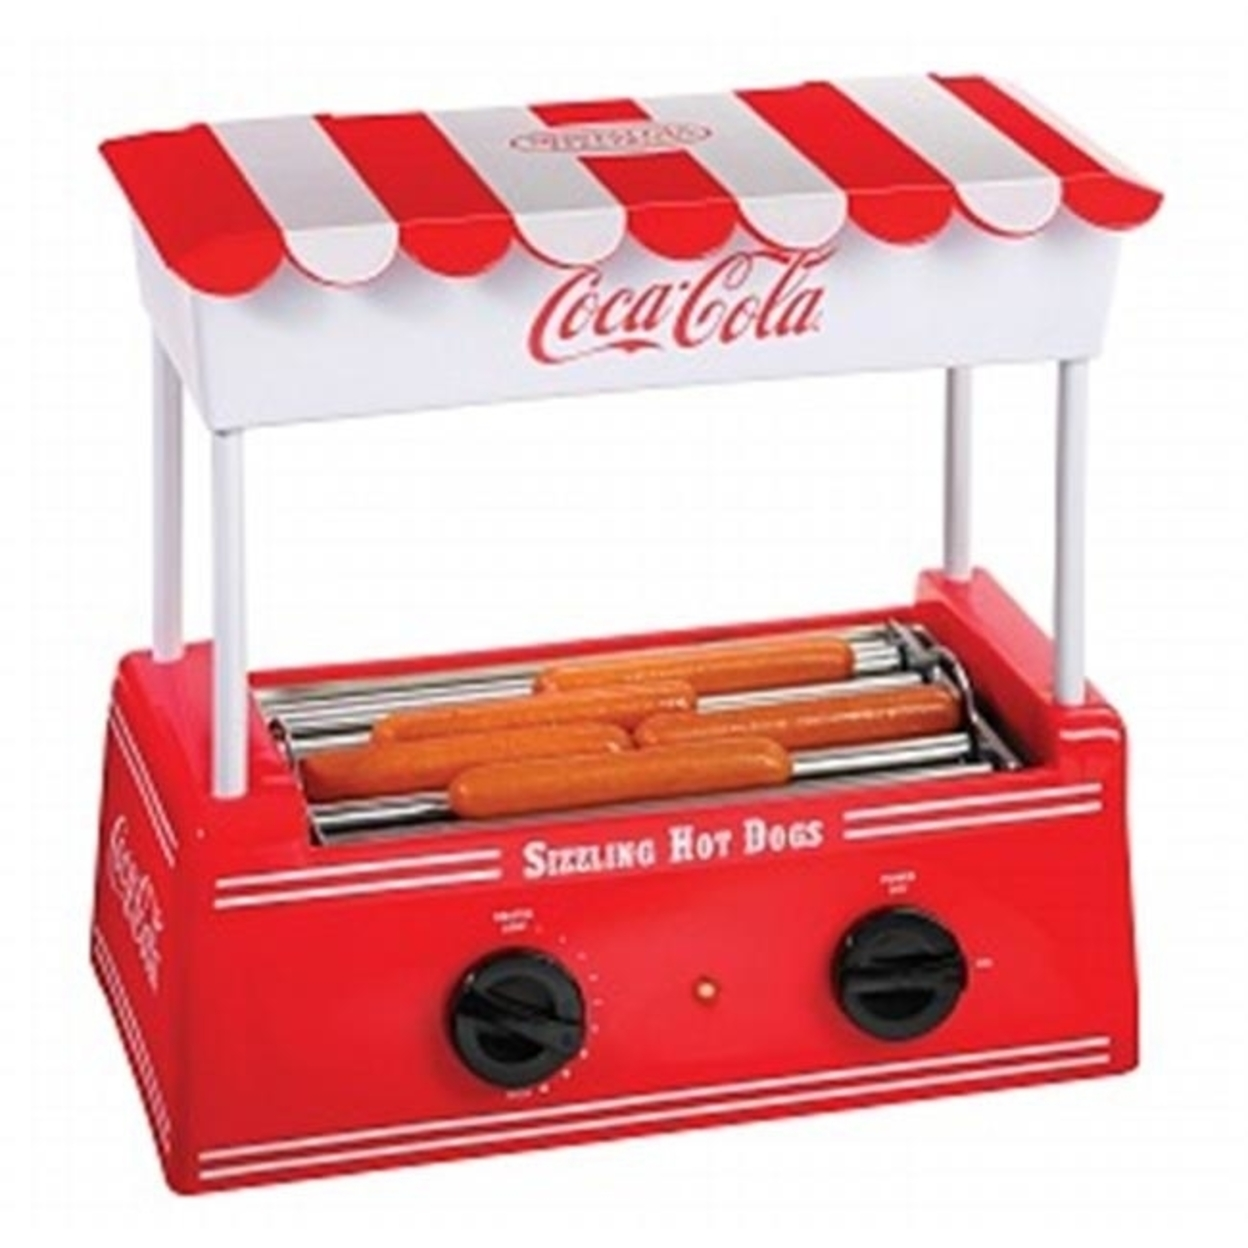 Nostalgia Products Group Hdr565Coke Coca-Cola Series Hot Dog Roller 596d34df2a00e4022c30ec15